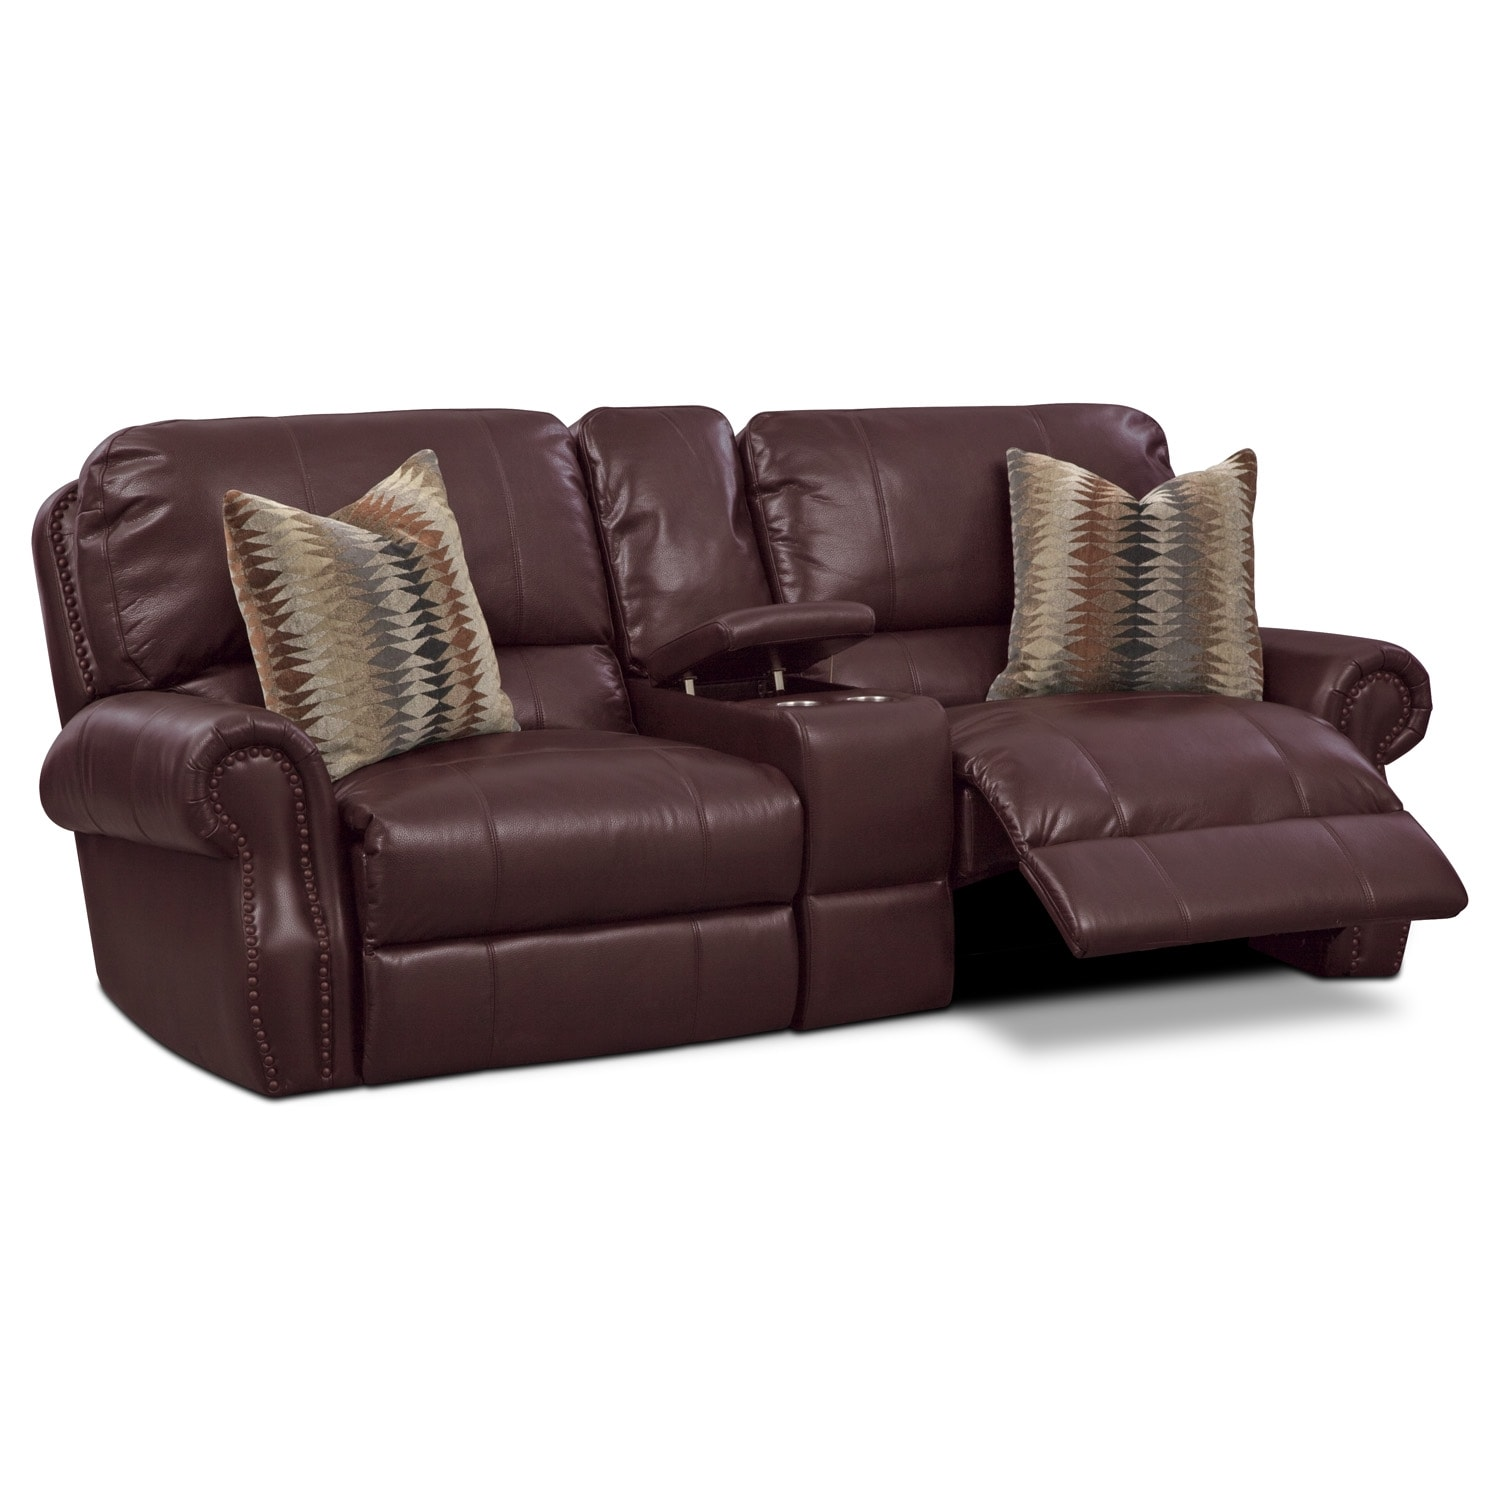 Living Room Furniture - Princeton 3 Pc. Power Reclining Sofa with Console